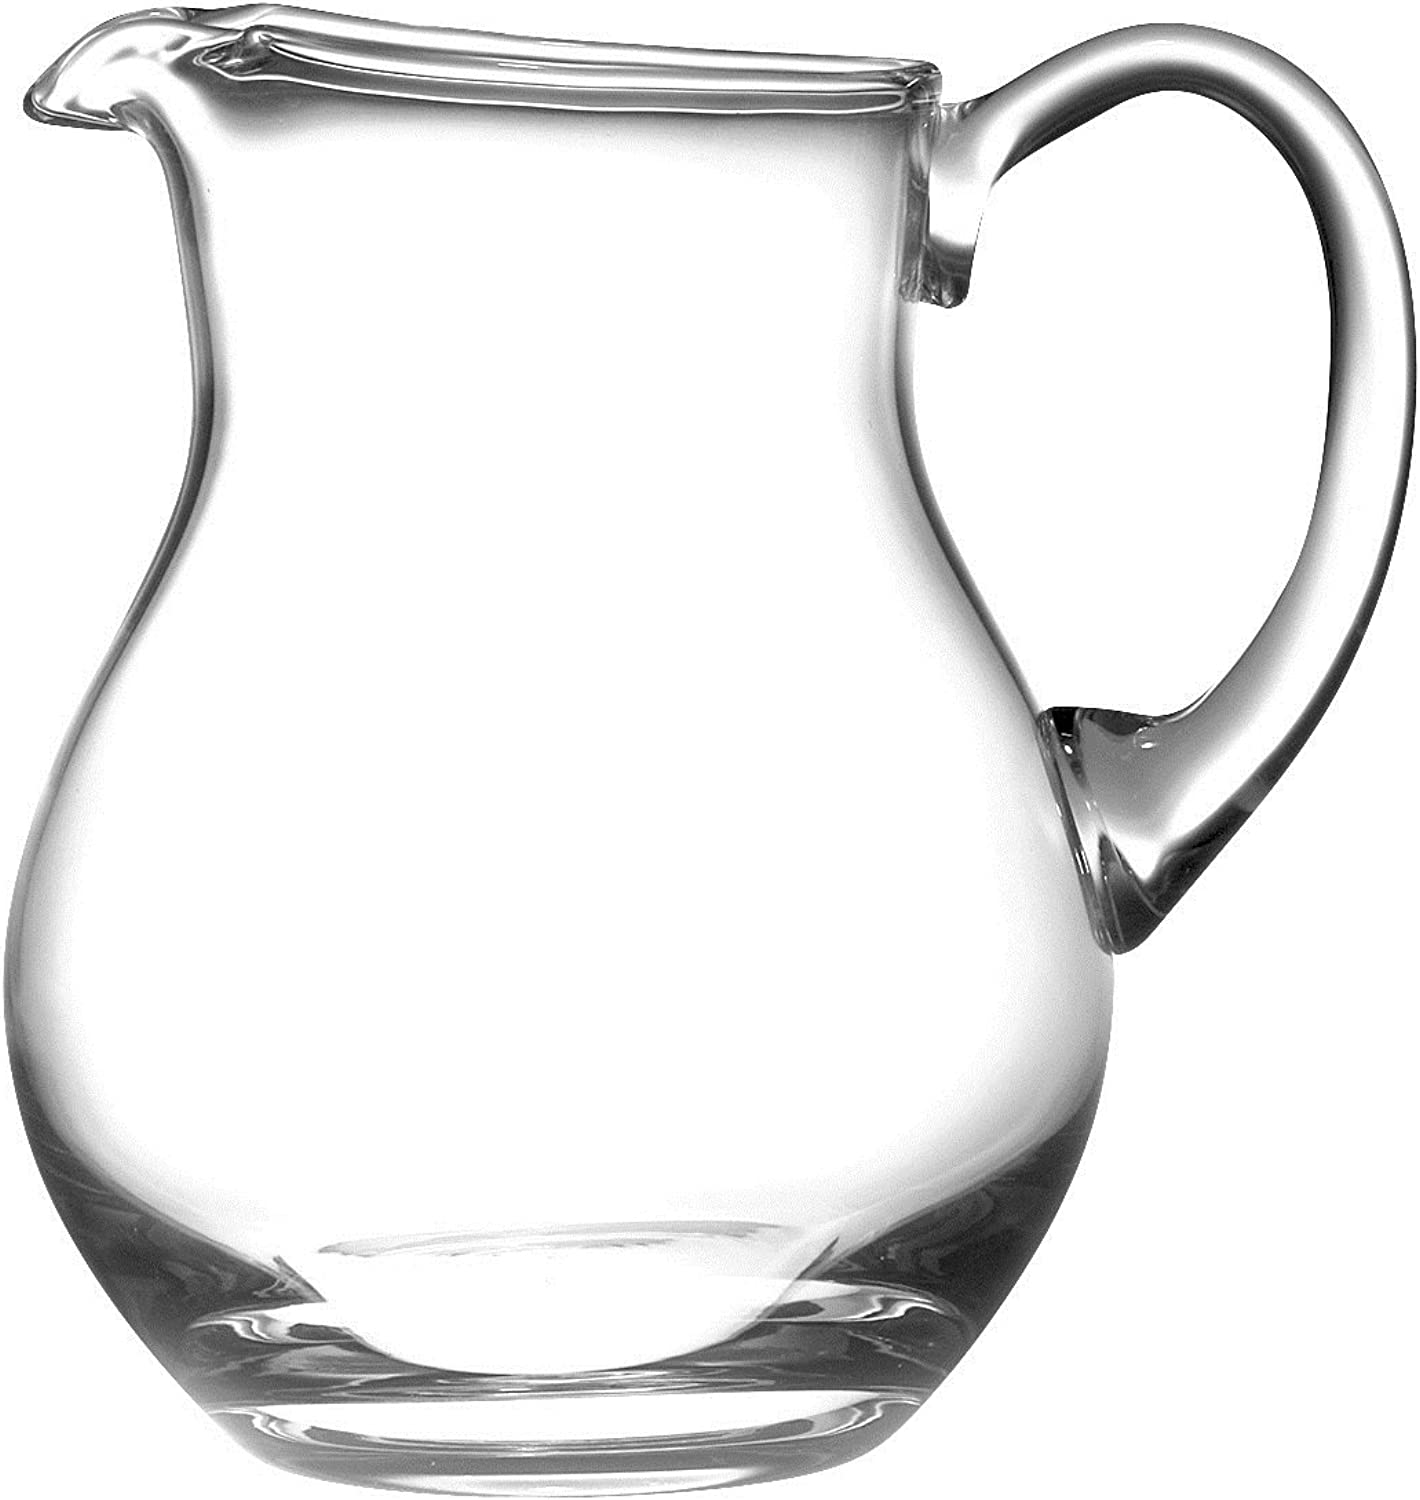 Barski Handmade Round Glass Pitcher with handle, With Spout, Ice Lip, 64 oz., Great for Kool aid, Made in Europe